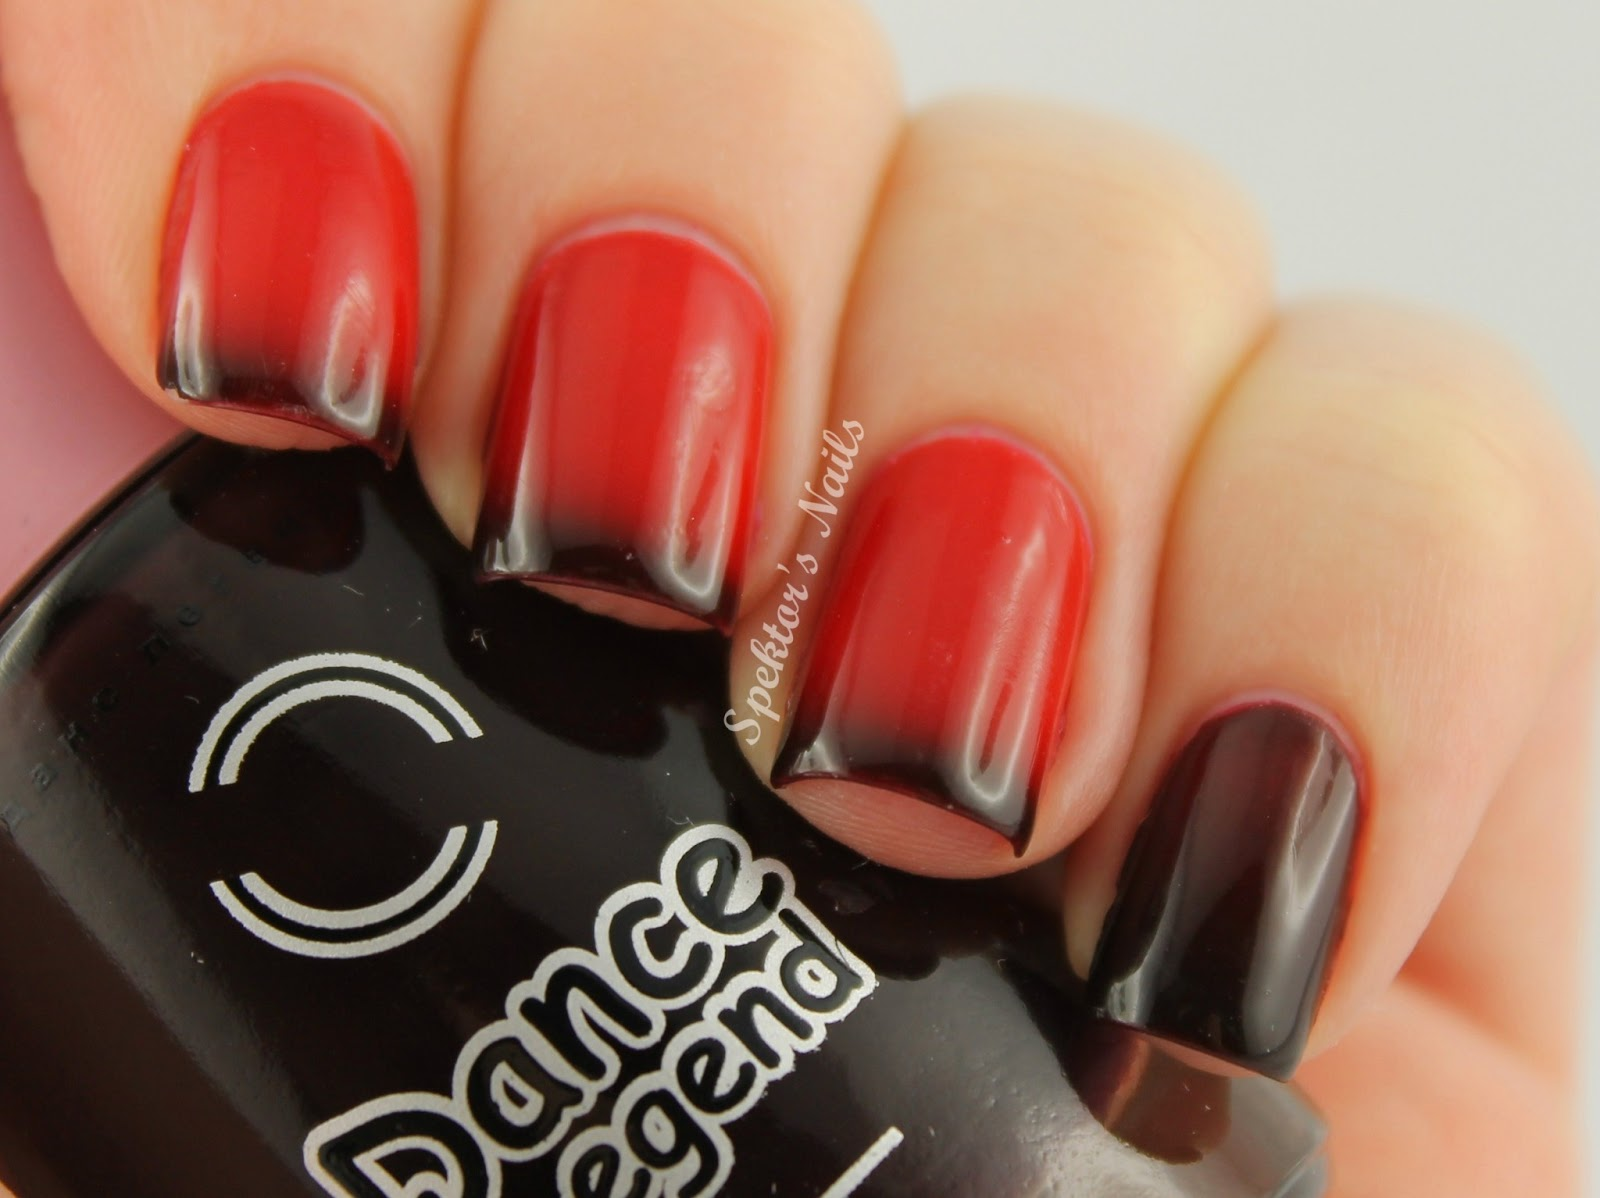 Dance Legend - 170 (Thermo - Color Changing Nail Polish)